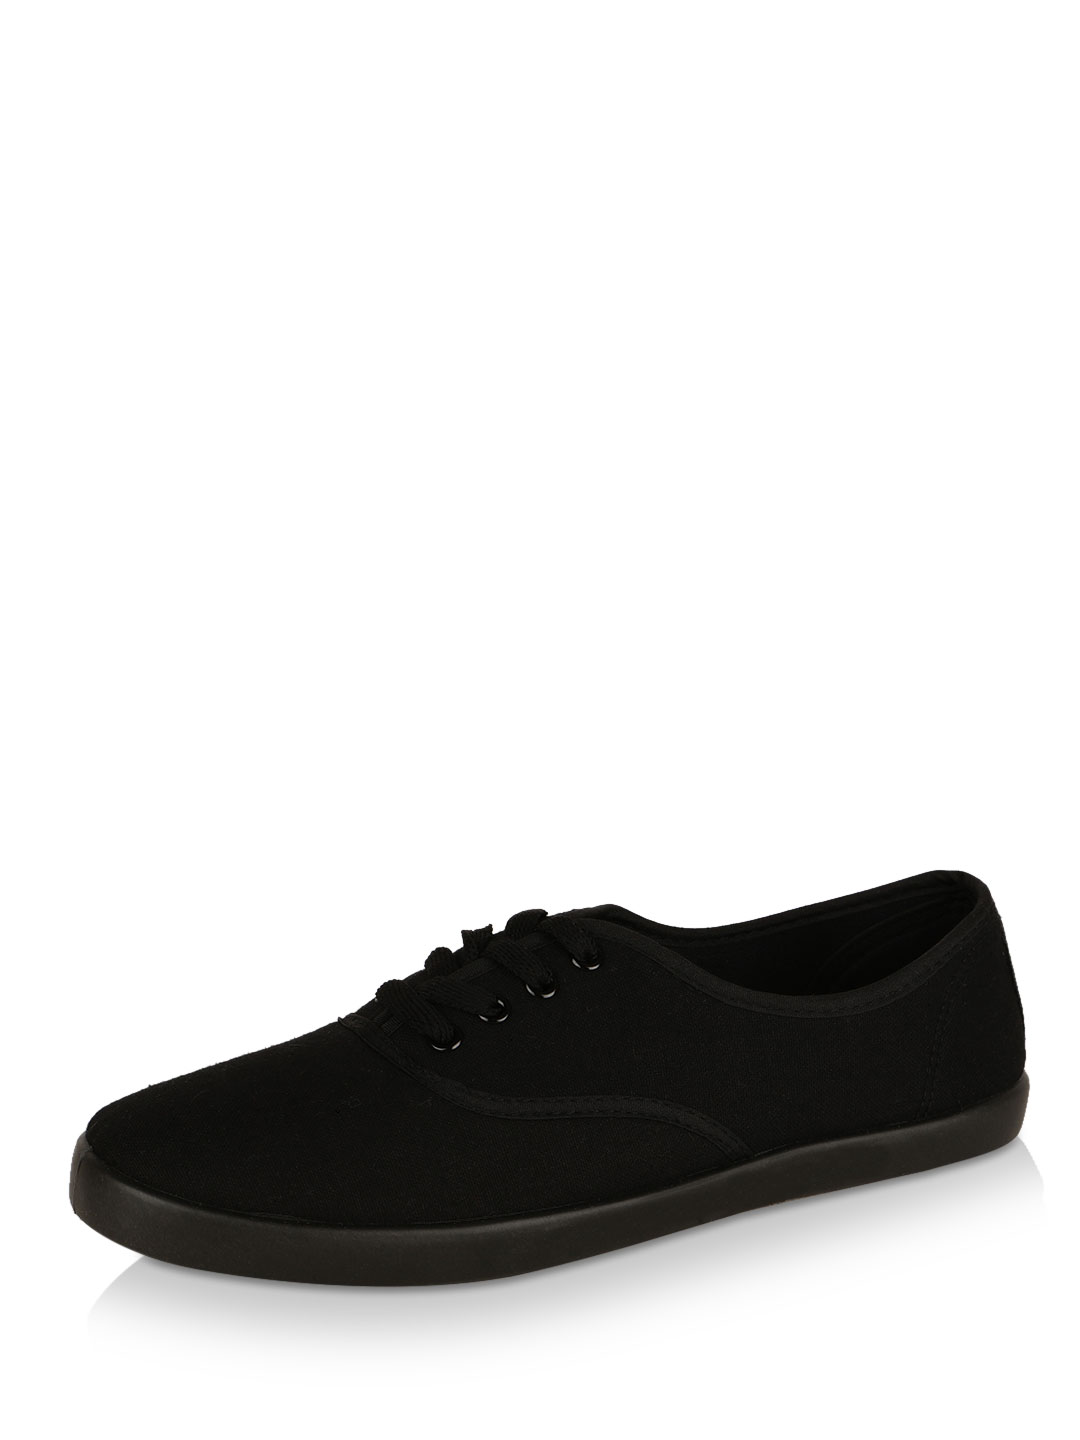 New Look Black Lace Up Trainers 1